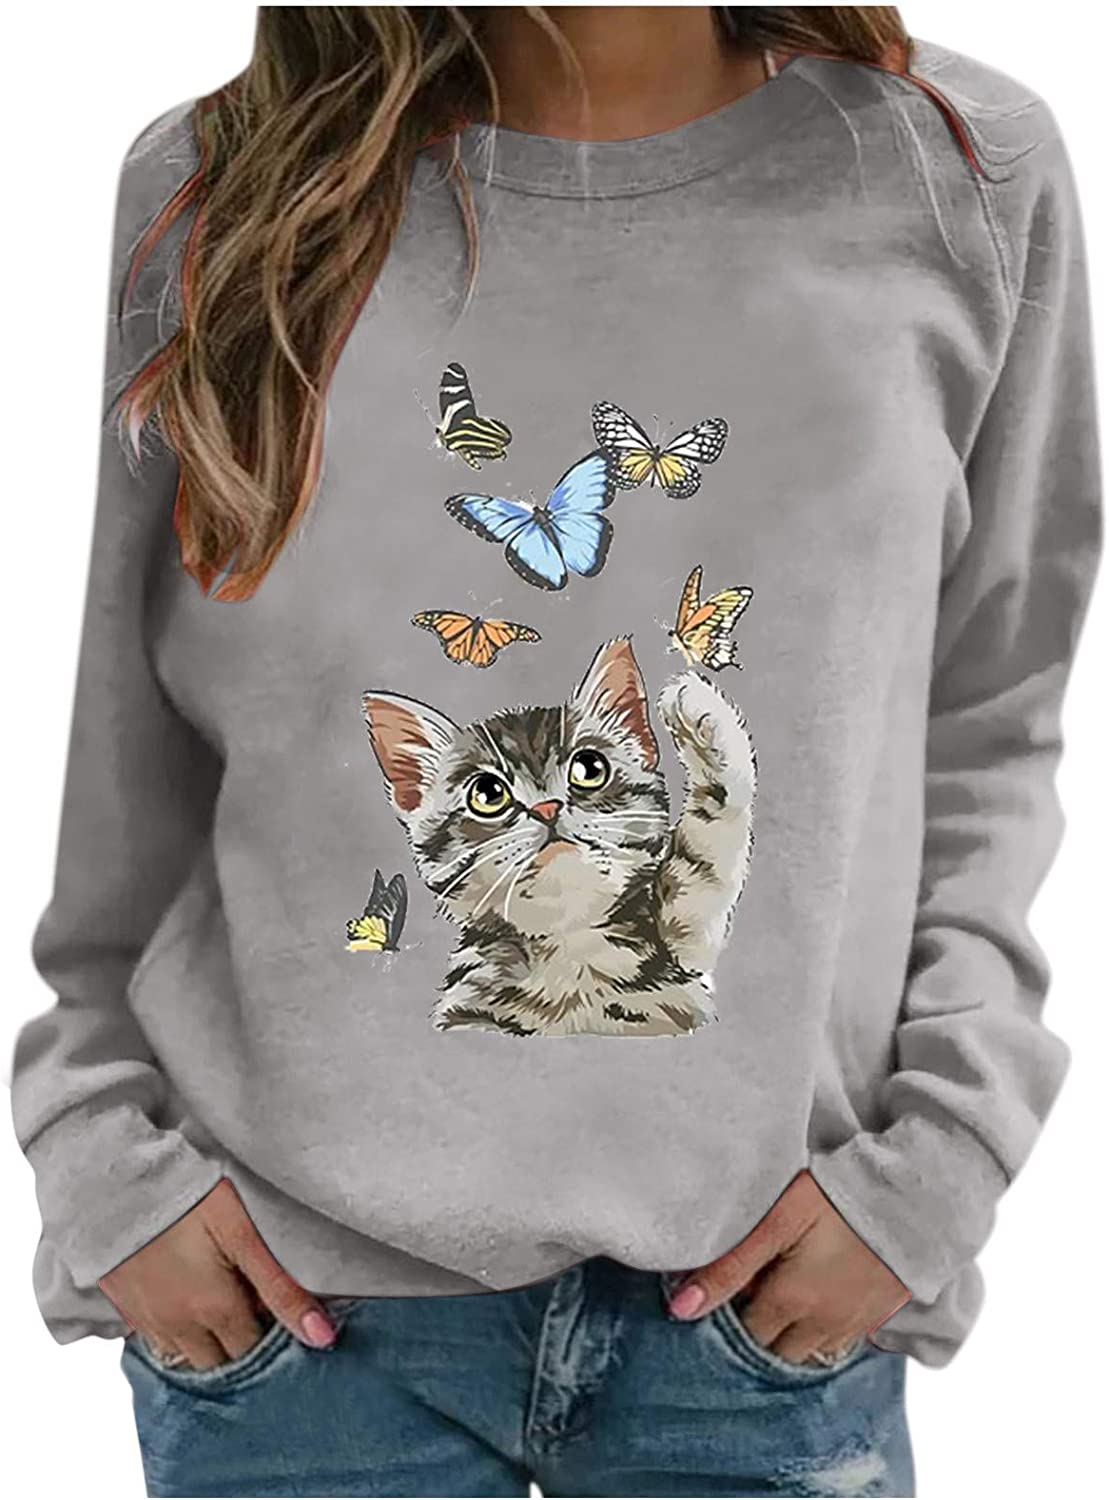 Graphic Tshirts for Women Long Sleeve Funny unisex and Cat Max 90% OFF Butterflies